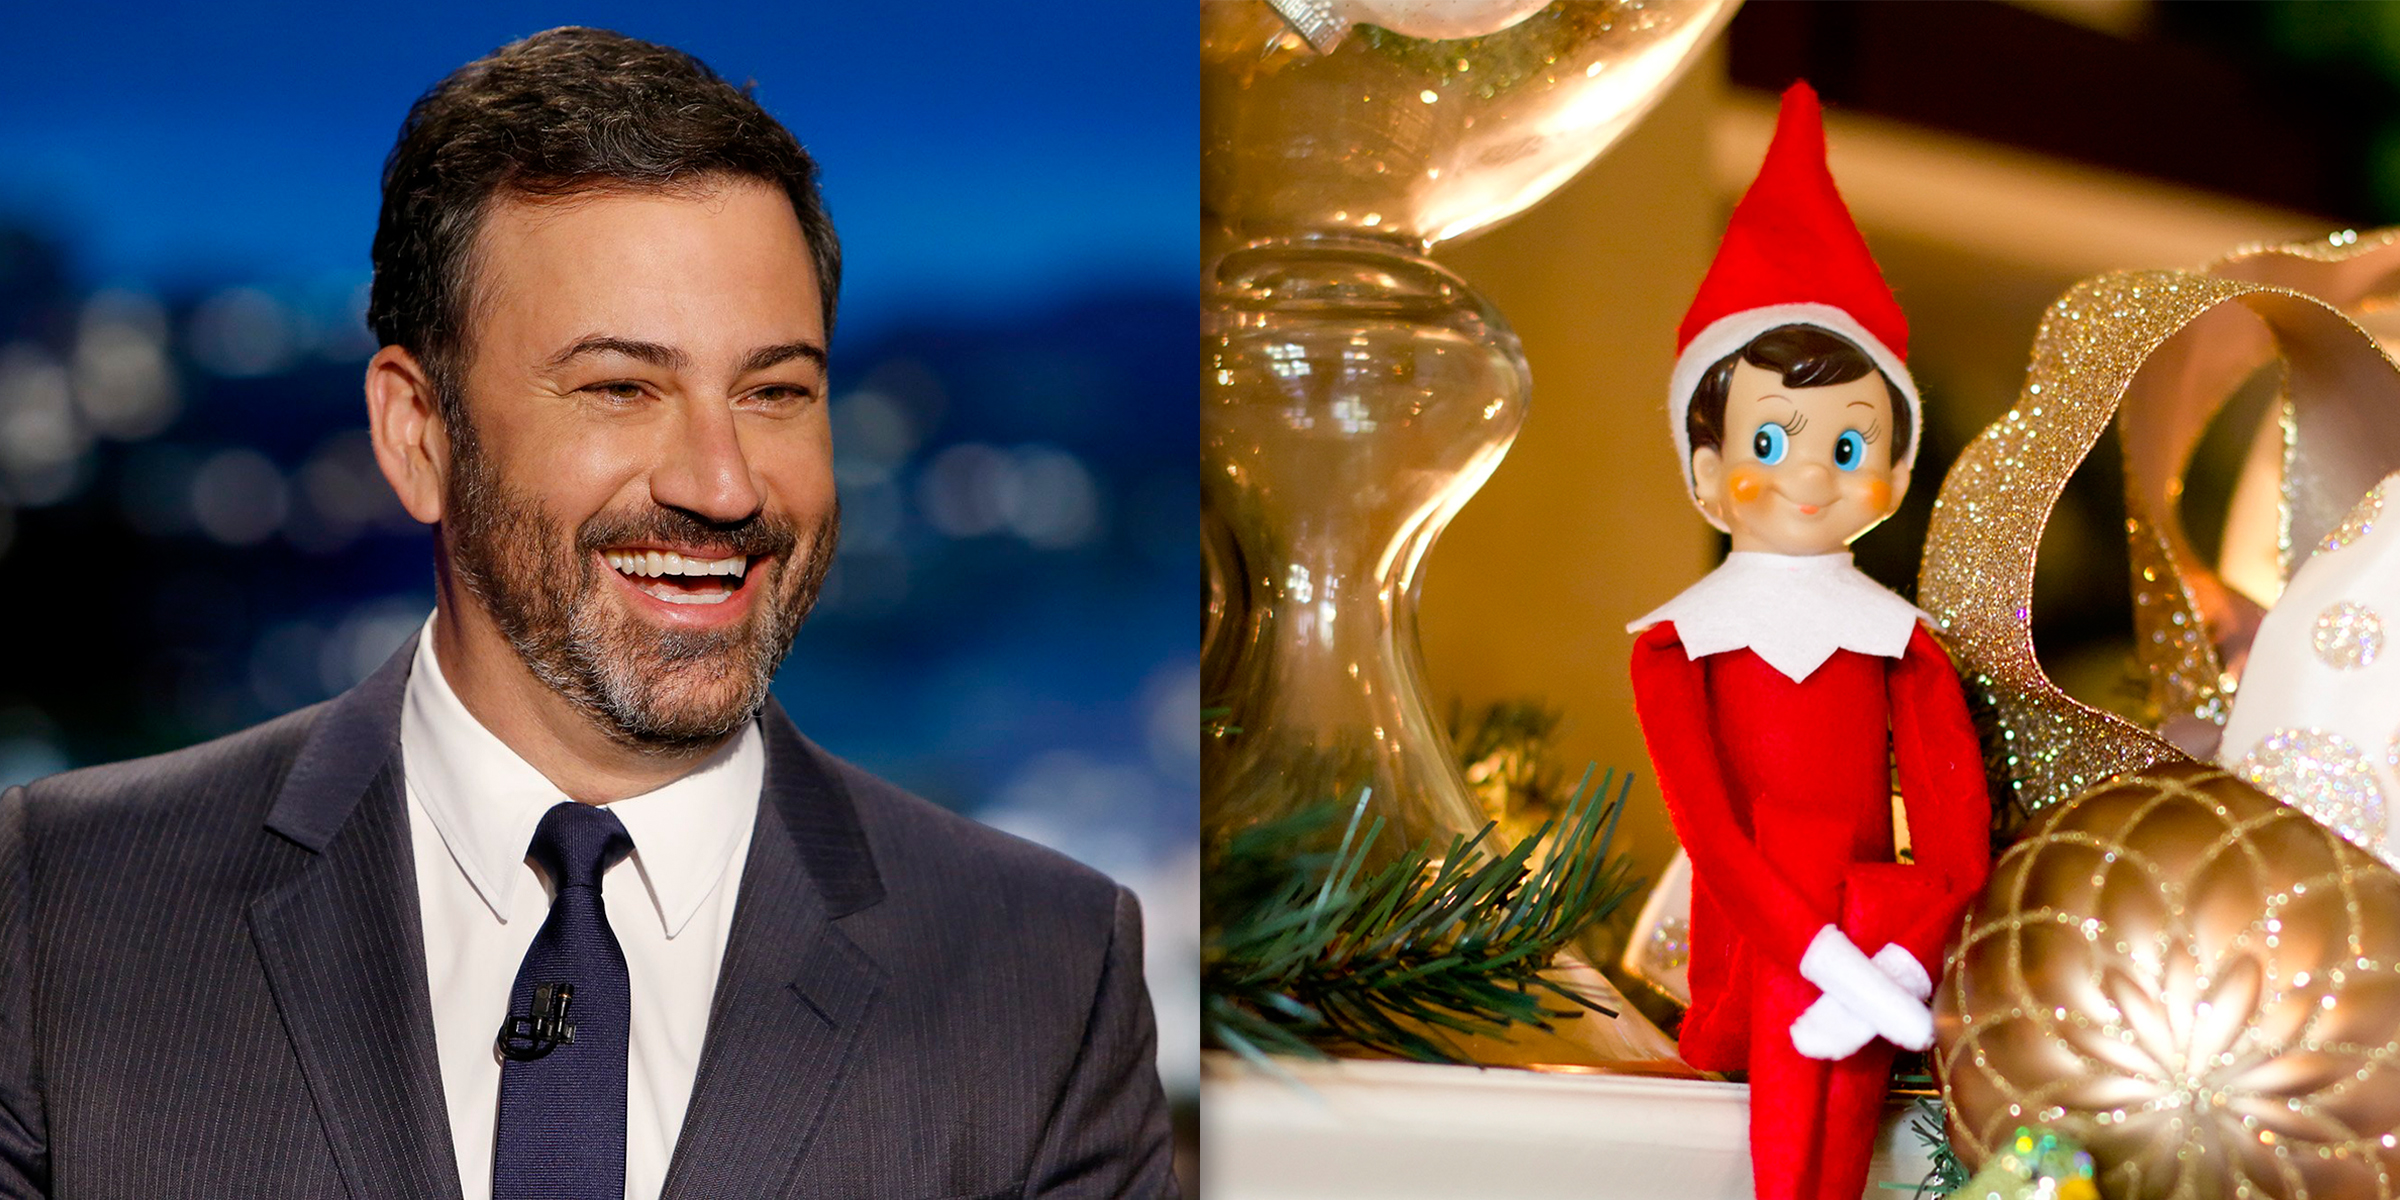 Jimmy Kimmel has a brilliant idea for Elf on the Shelf